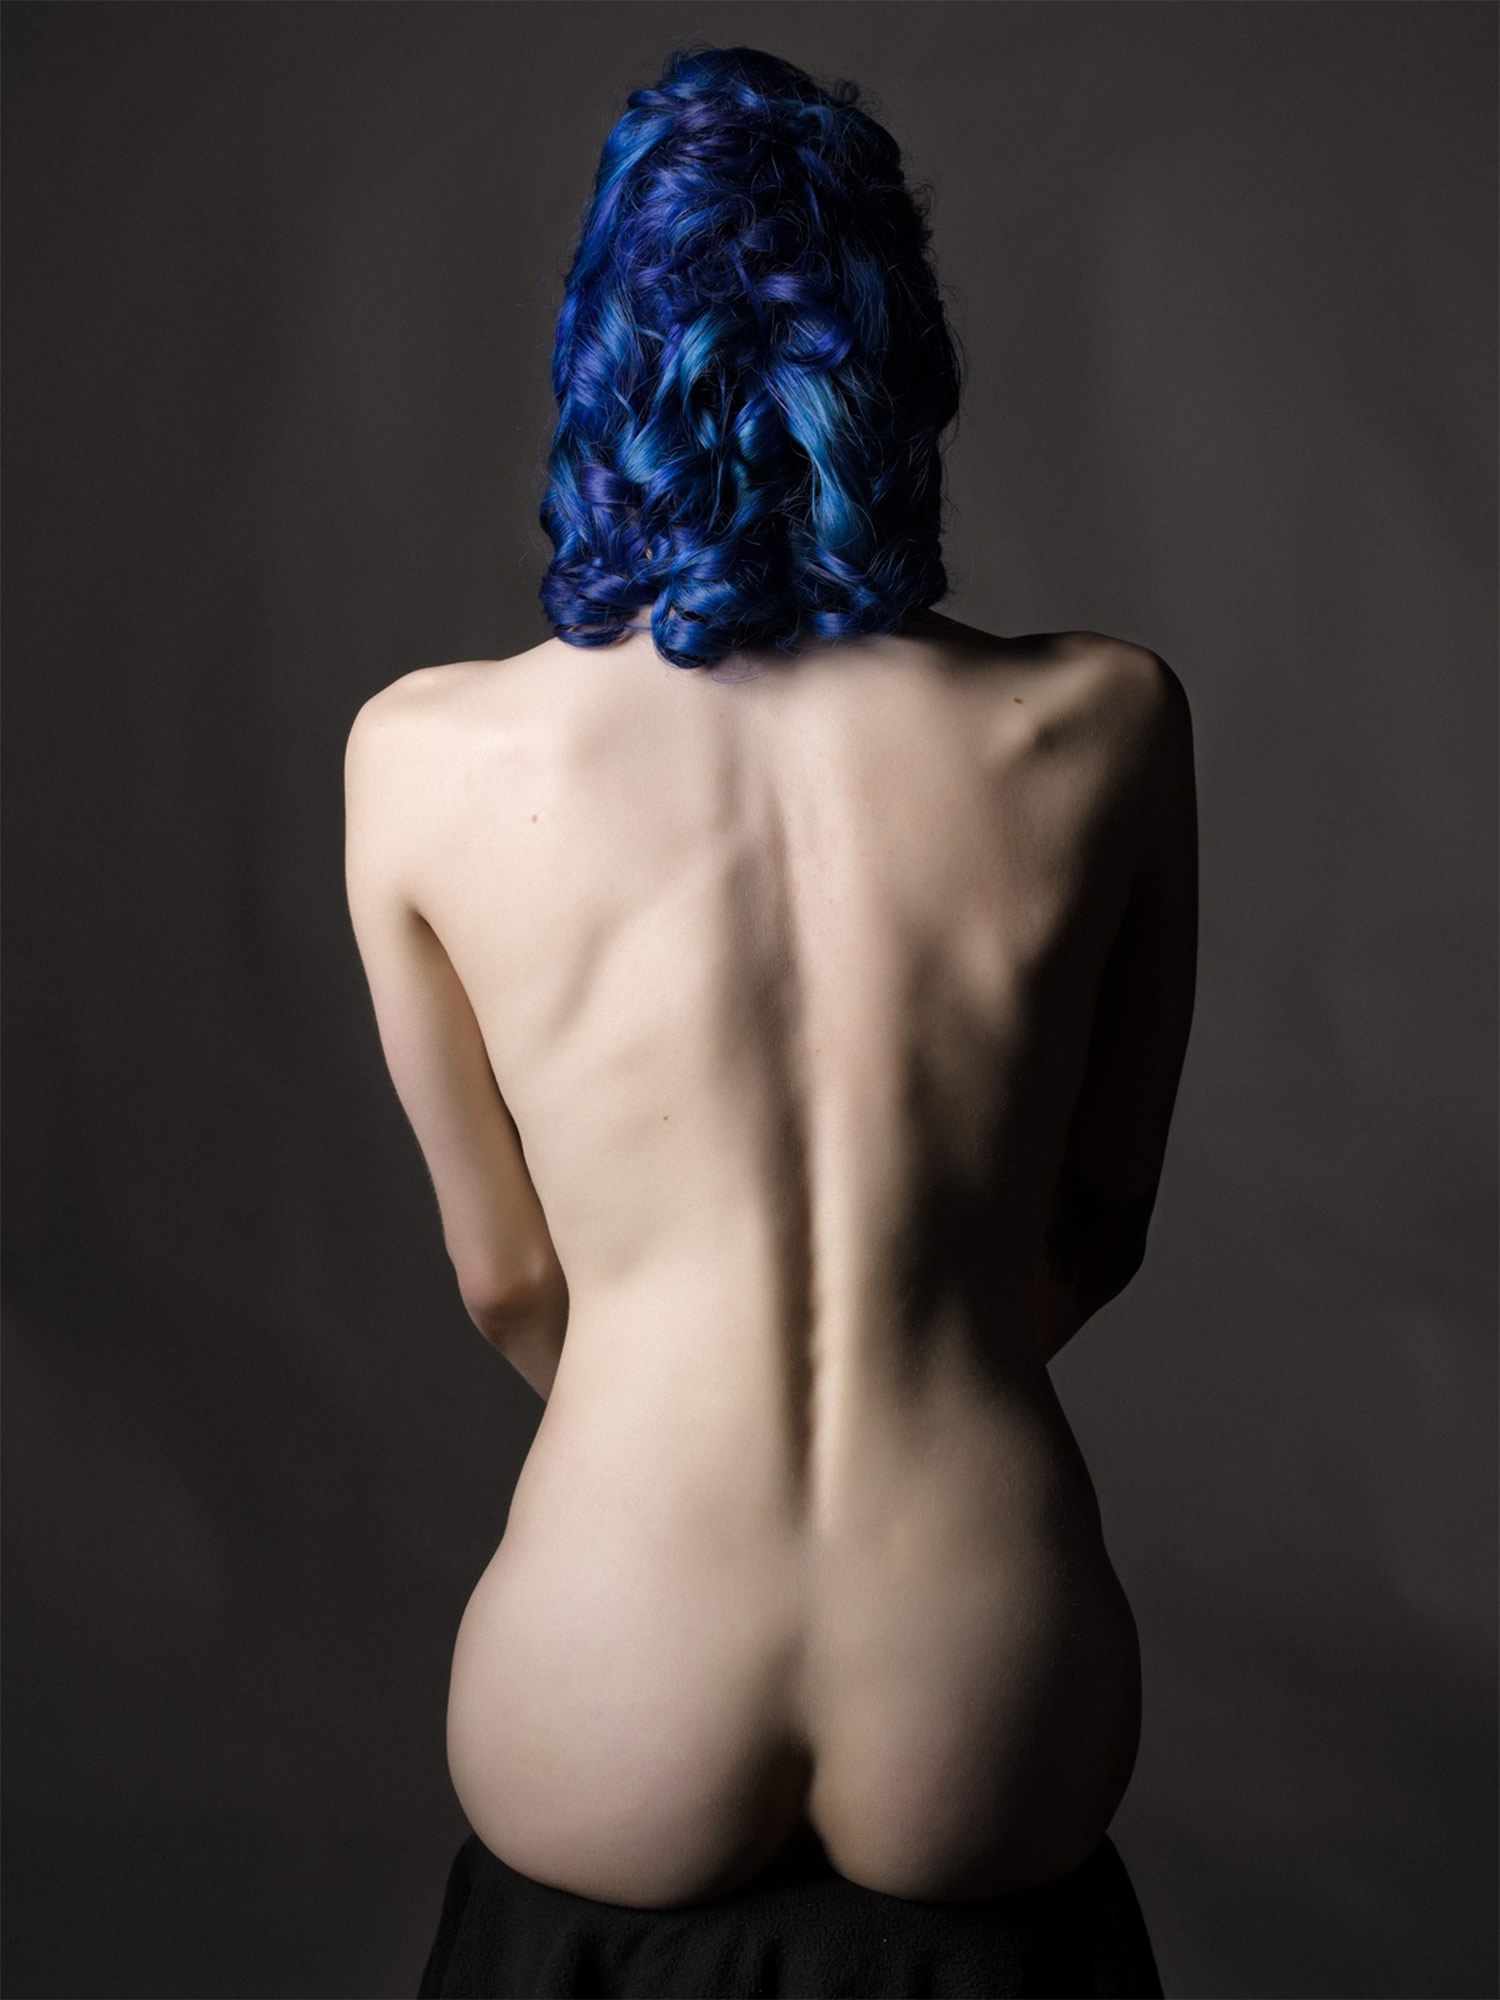 Camille nude study #2 by bruce walker, nude study, surrealist style